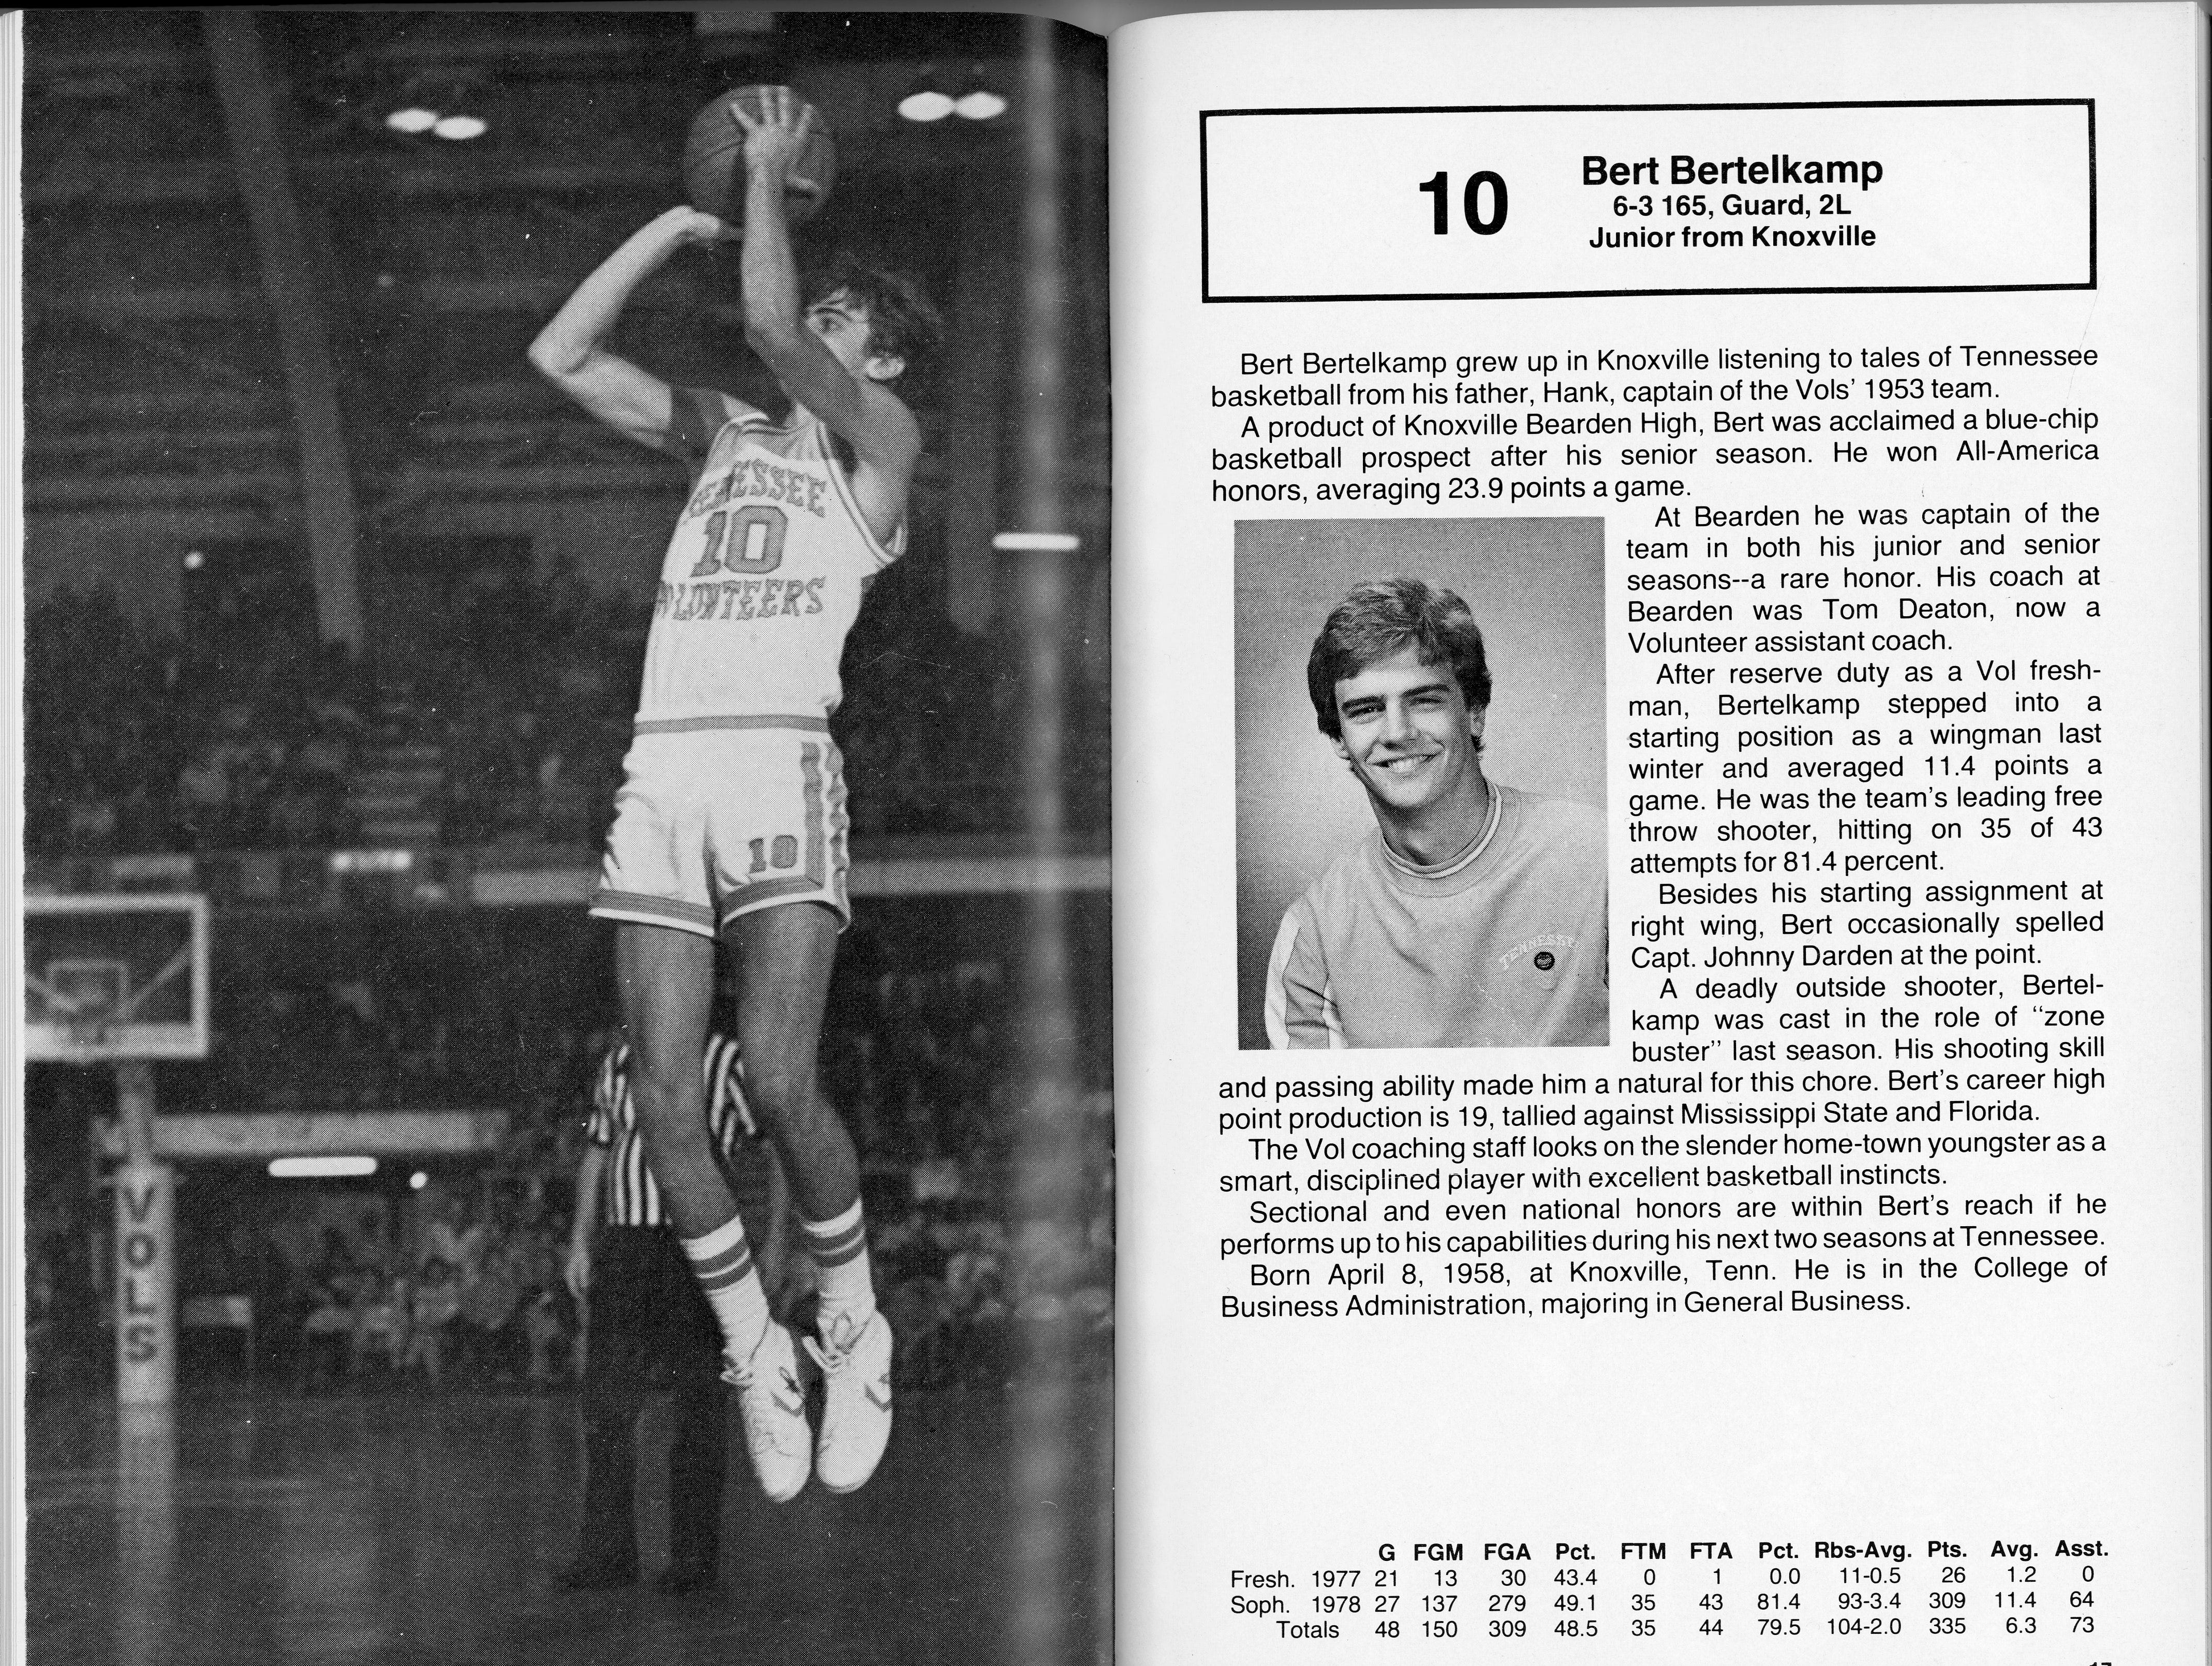 Scans of the 1978-1979 Tennessee basketball media guide. Tennessee beat University of Kentucky in the SEC championship in 1979.